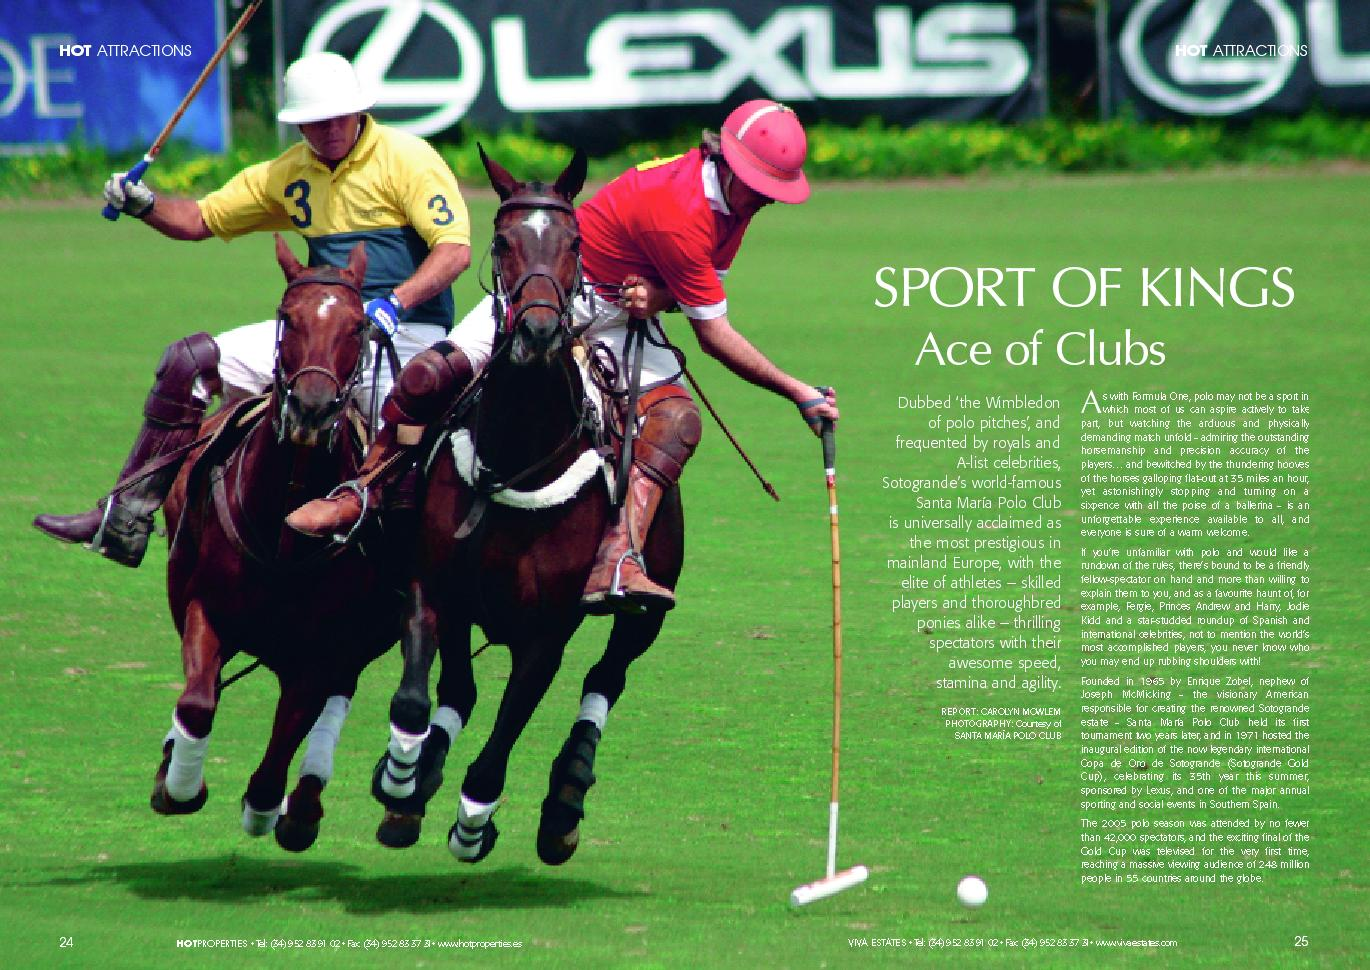 Sport of Kings - Santa María Polo Club - Sotogrande | HOT Properties Magazine Archive thumb image